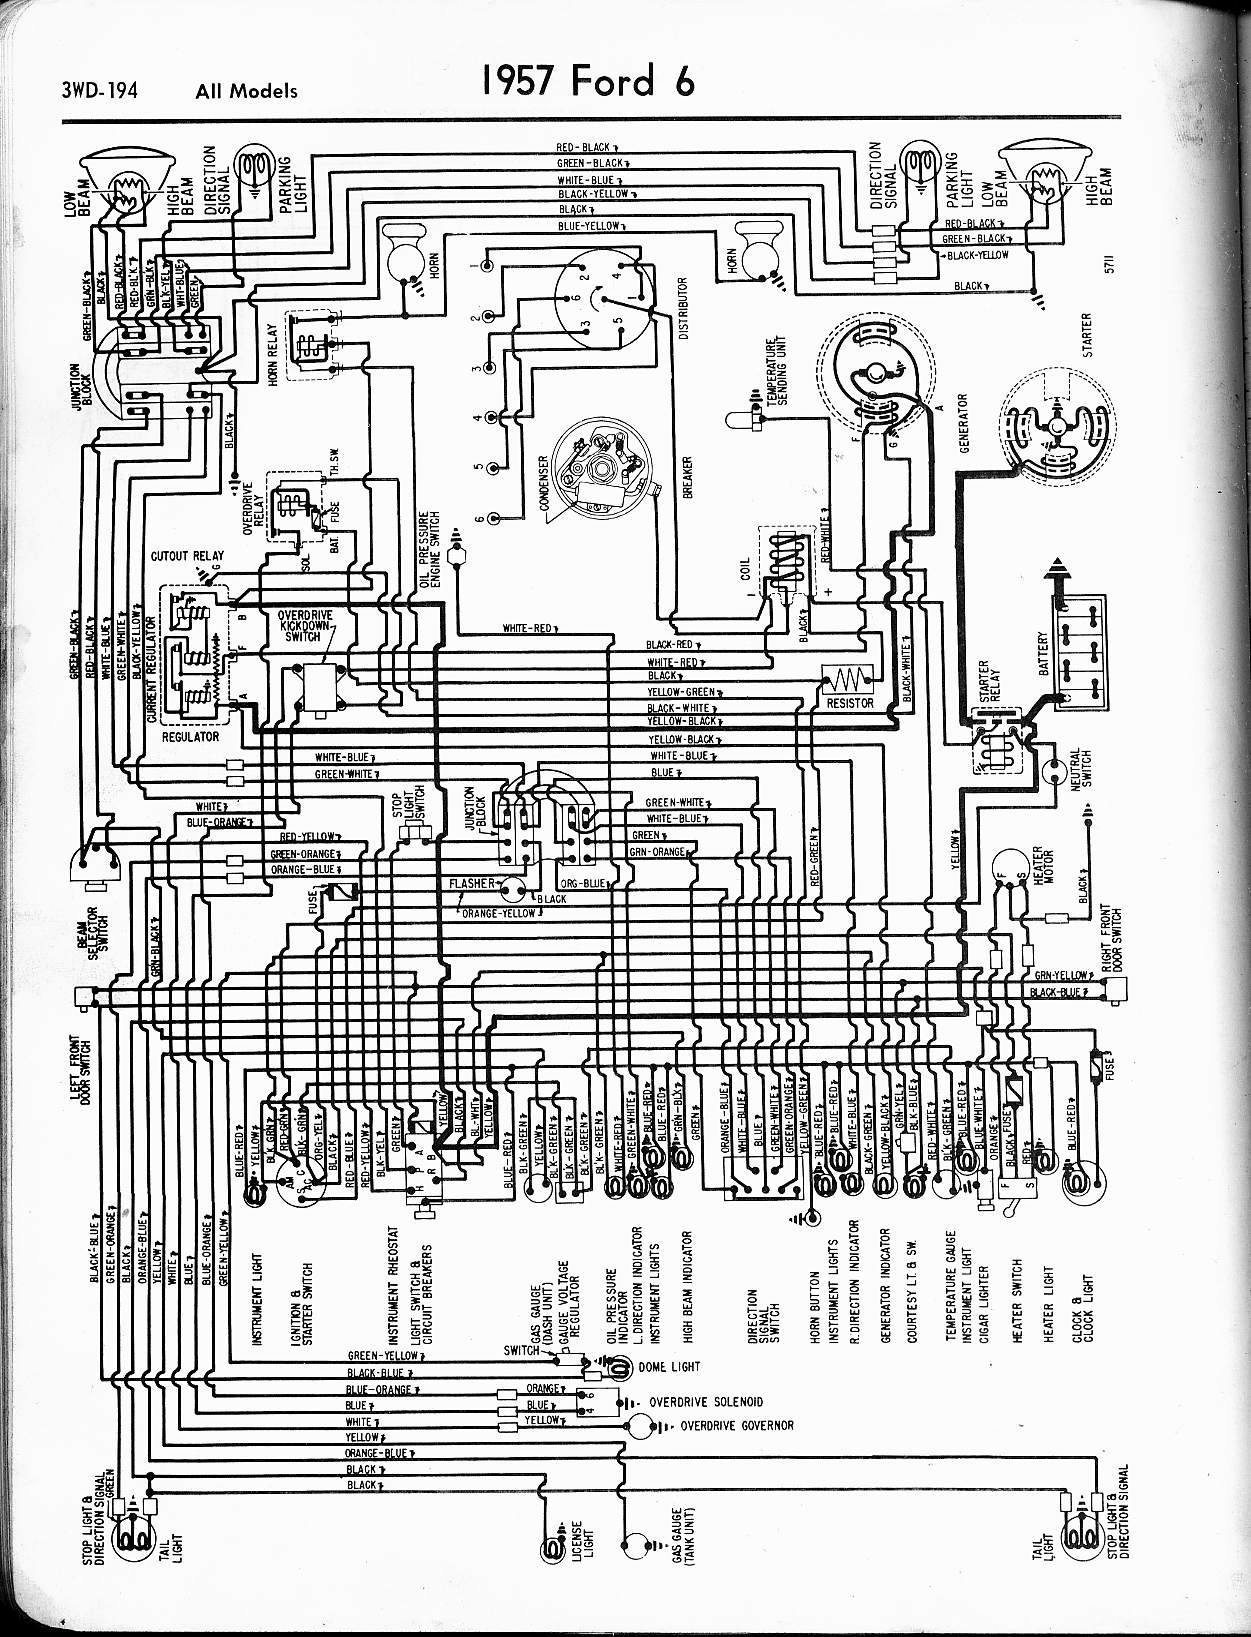 1967 Ford Wiring Diagrams Diagram Base Website Wiring Diagrams -  AVENNDIAGRAM.MARIORAPISARDI.ITDiagram Base Website Full Edition - mariorapisardi.it